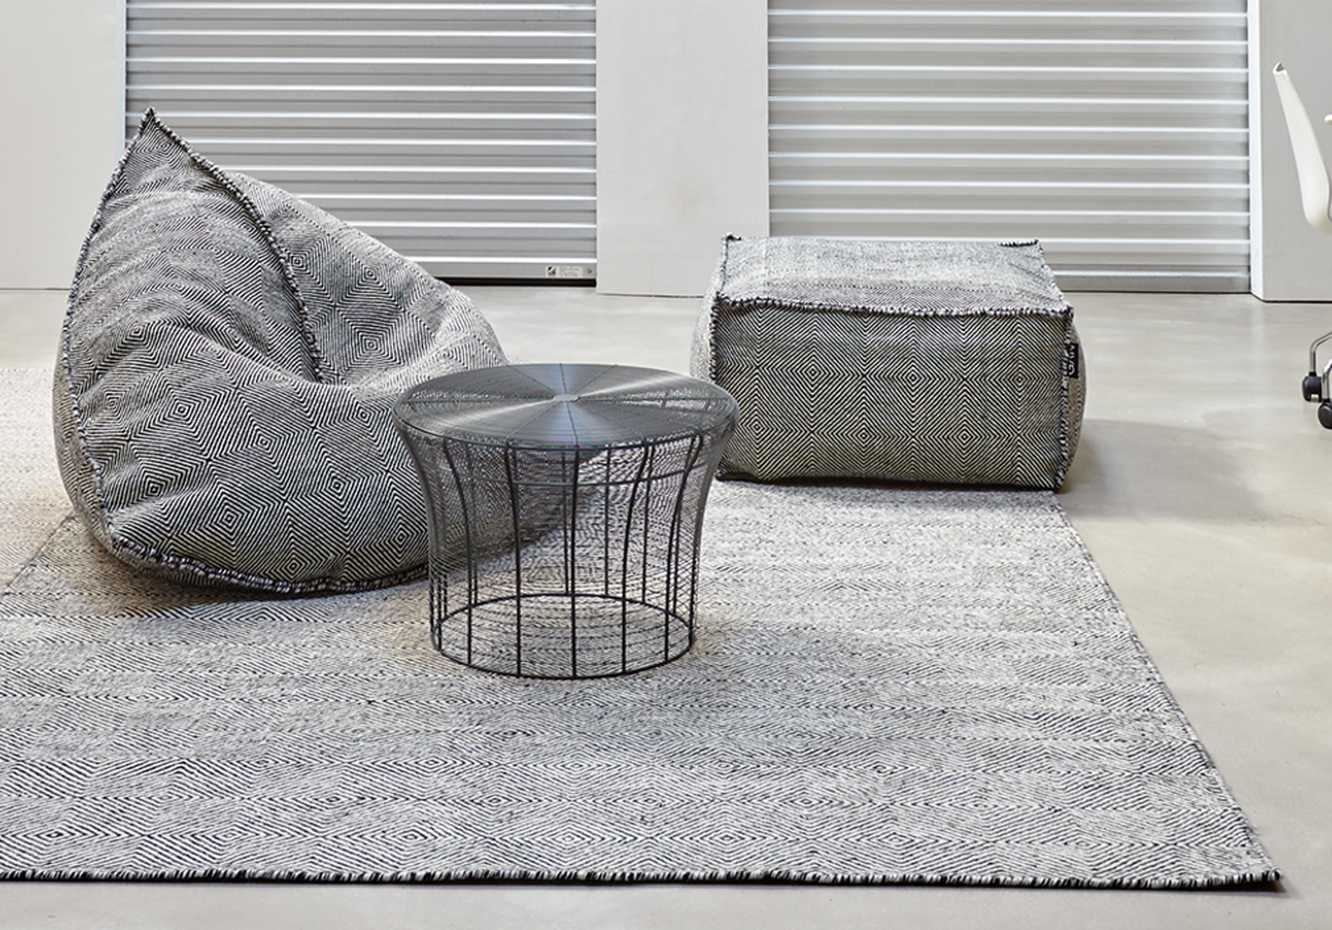 Sail Square Pouf by Gan Rugs product image 3